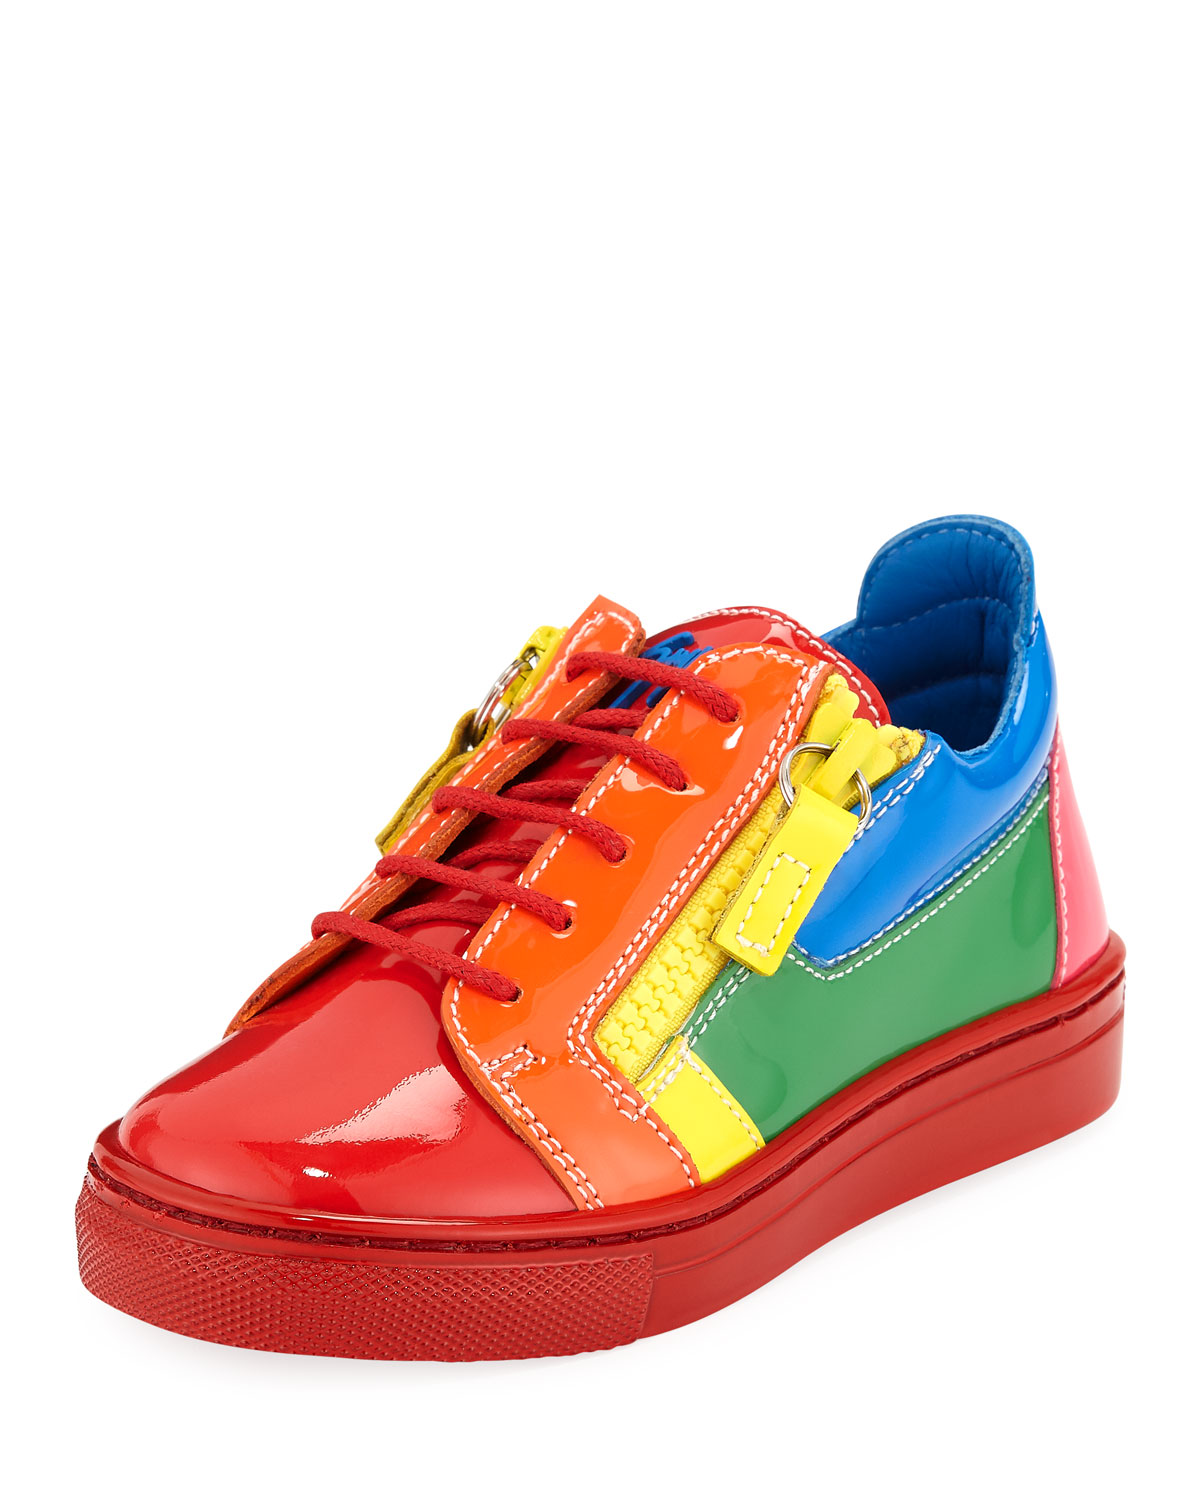 6efcae5f6549 Giuseppe Zanotti Rainbow Patent Leather Low-Top Sneakers